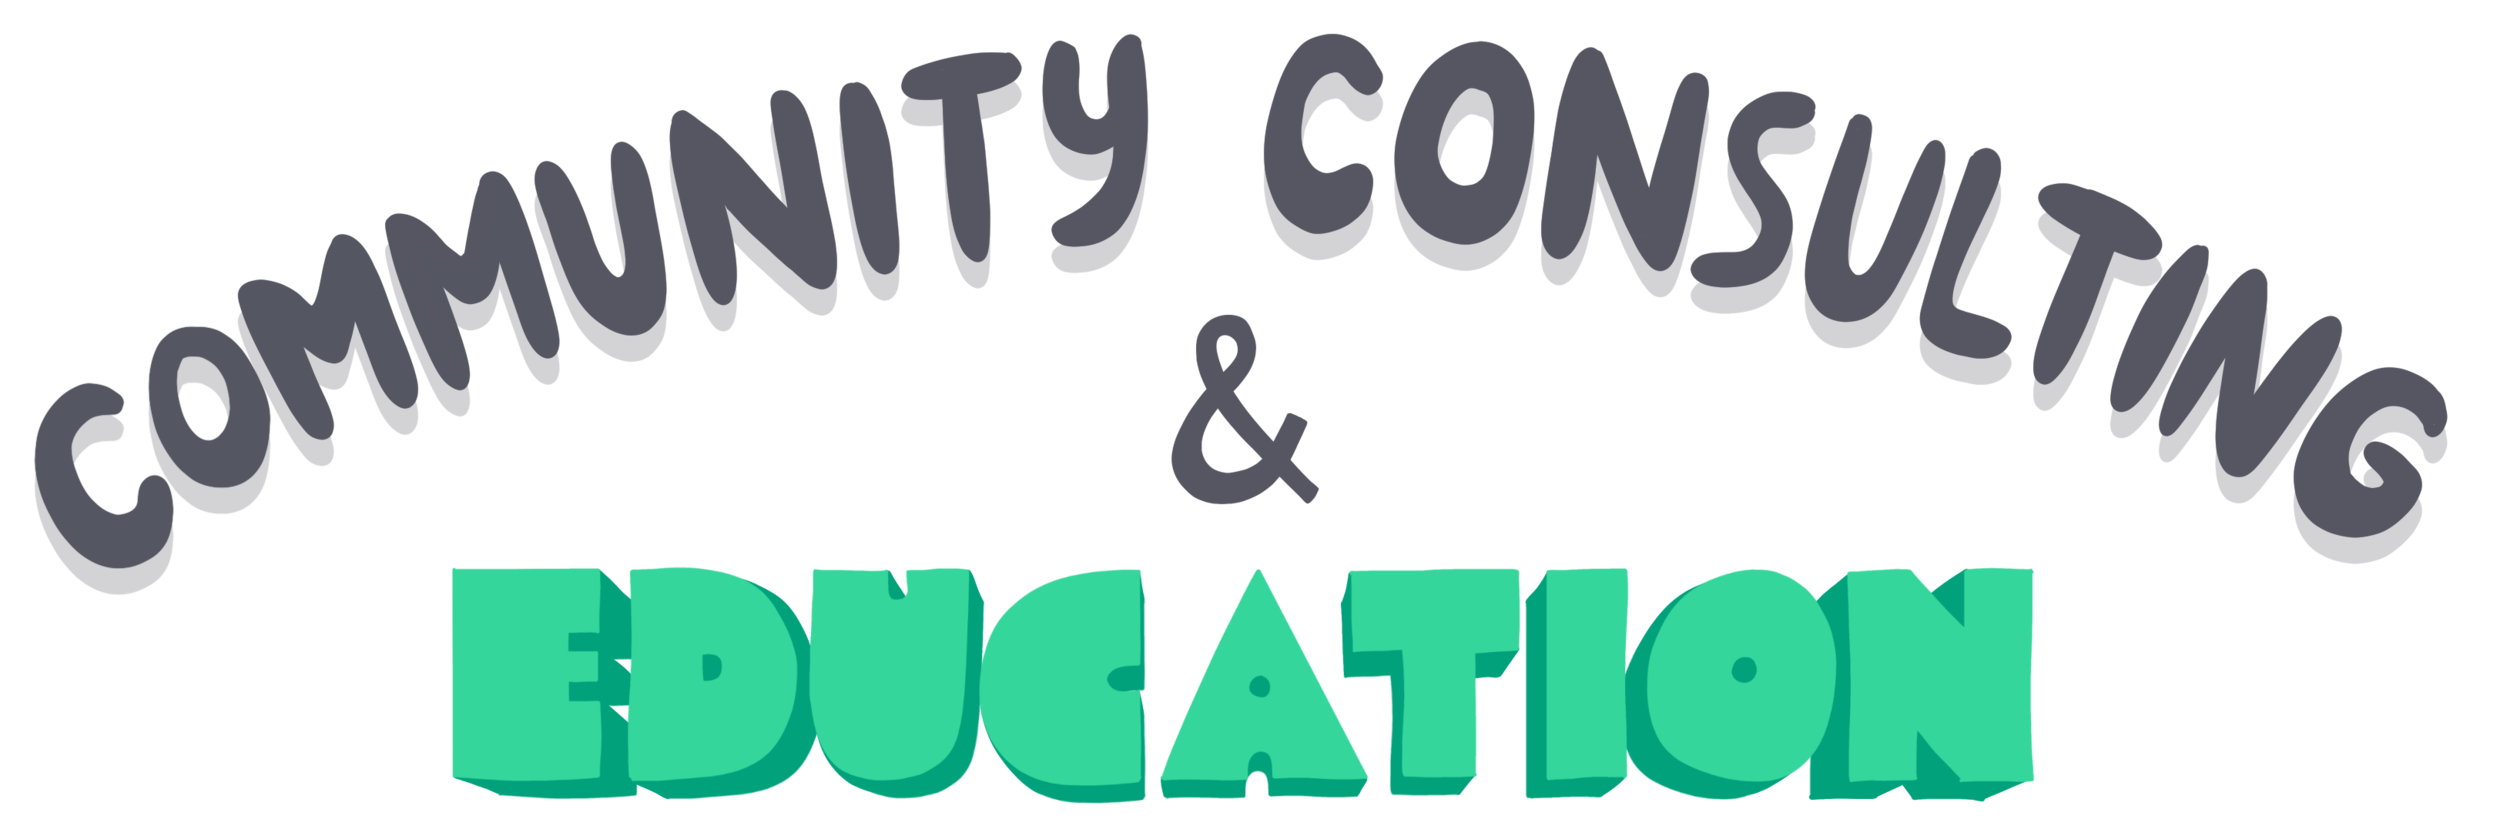 community consulting + education title image.png